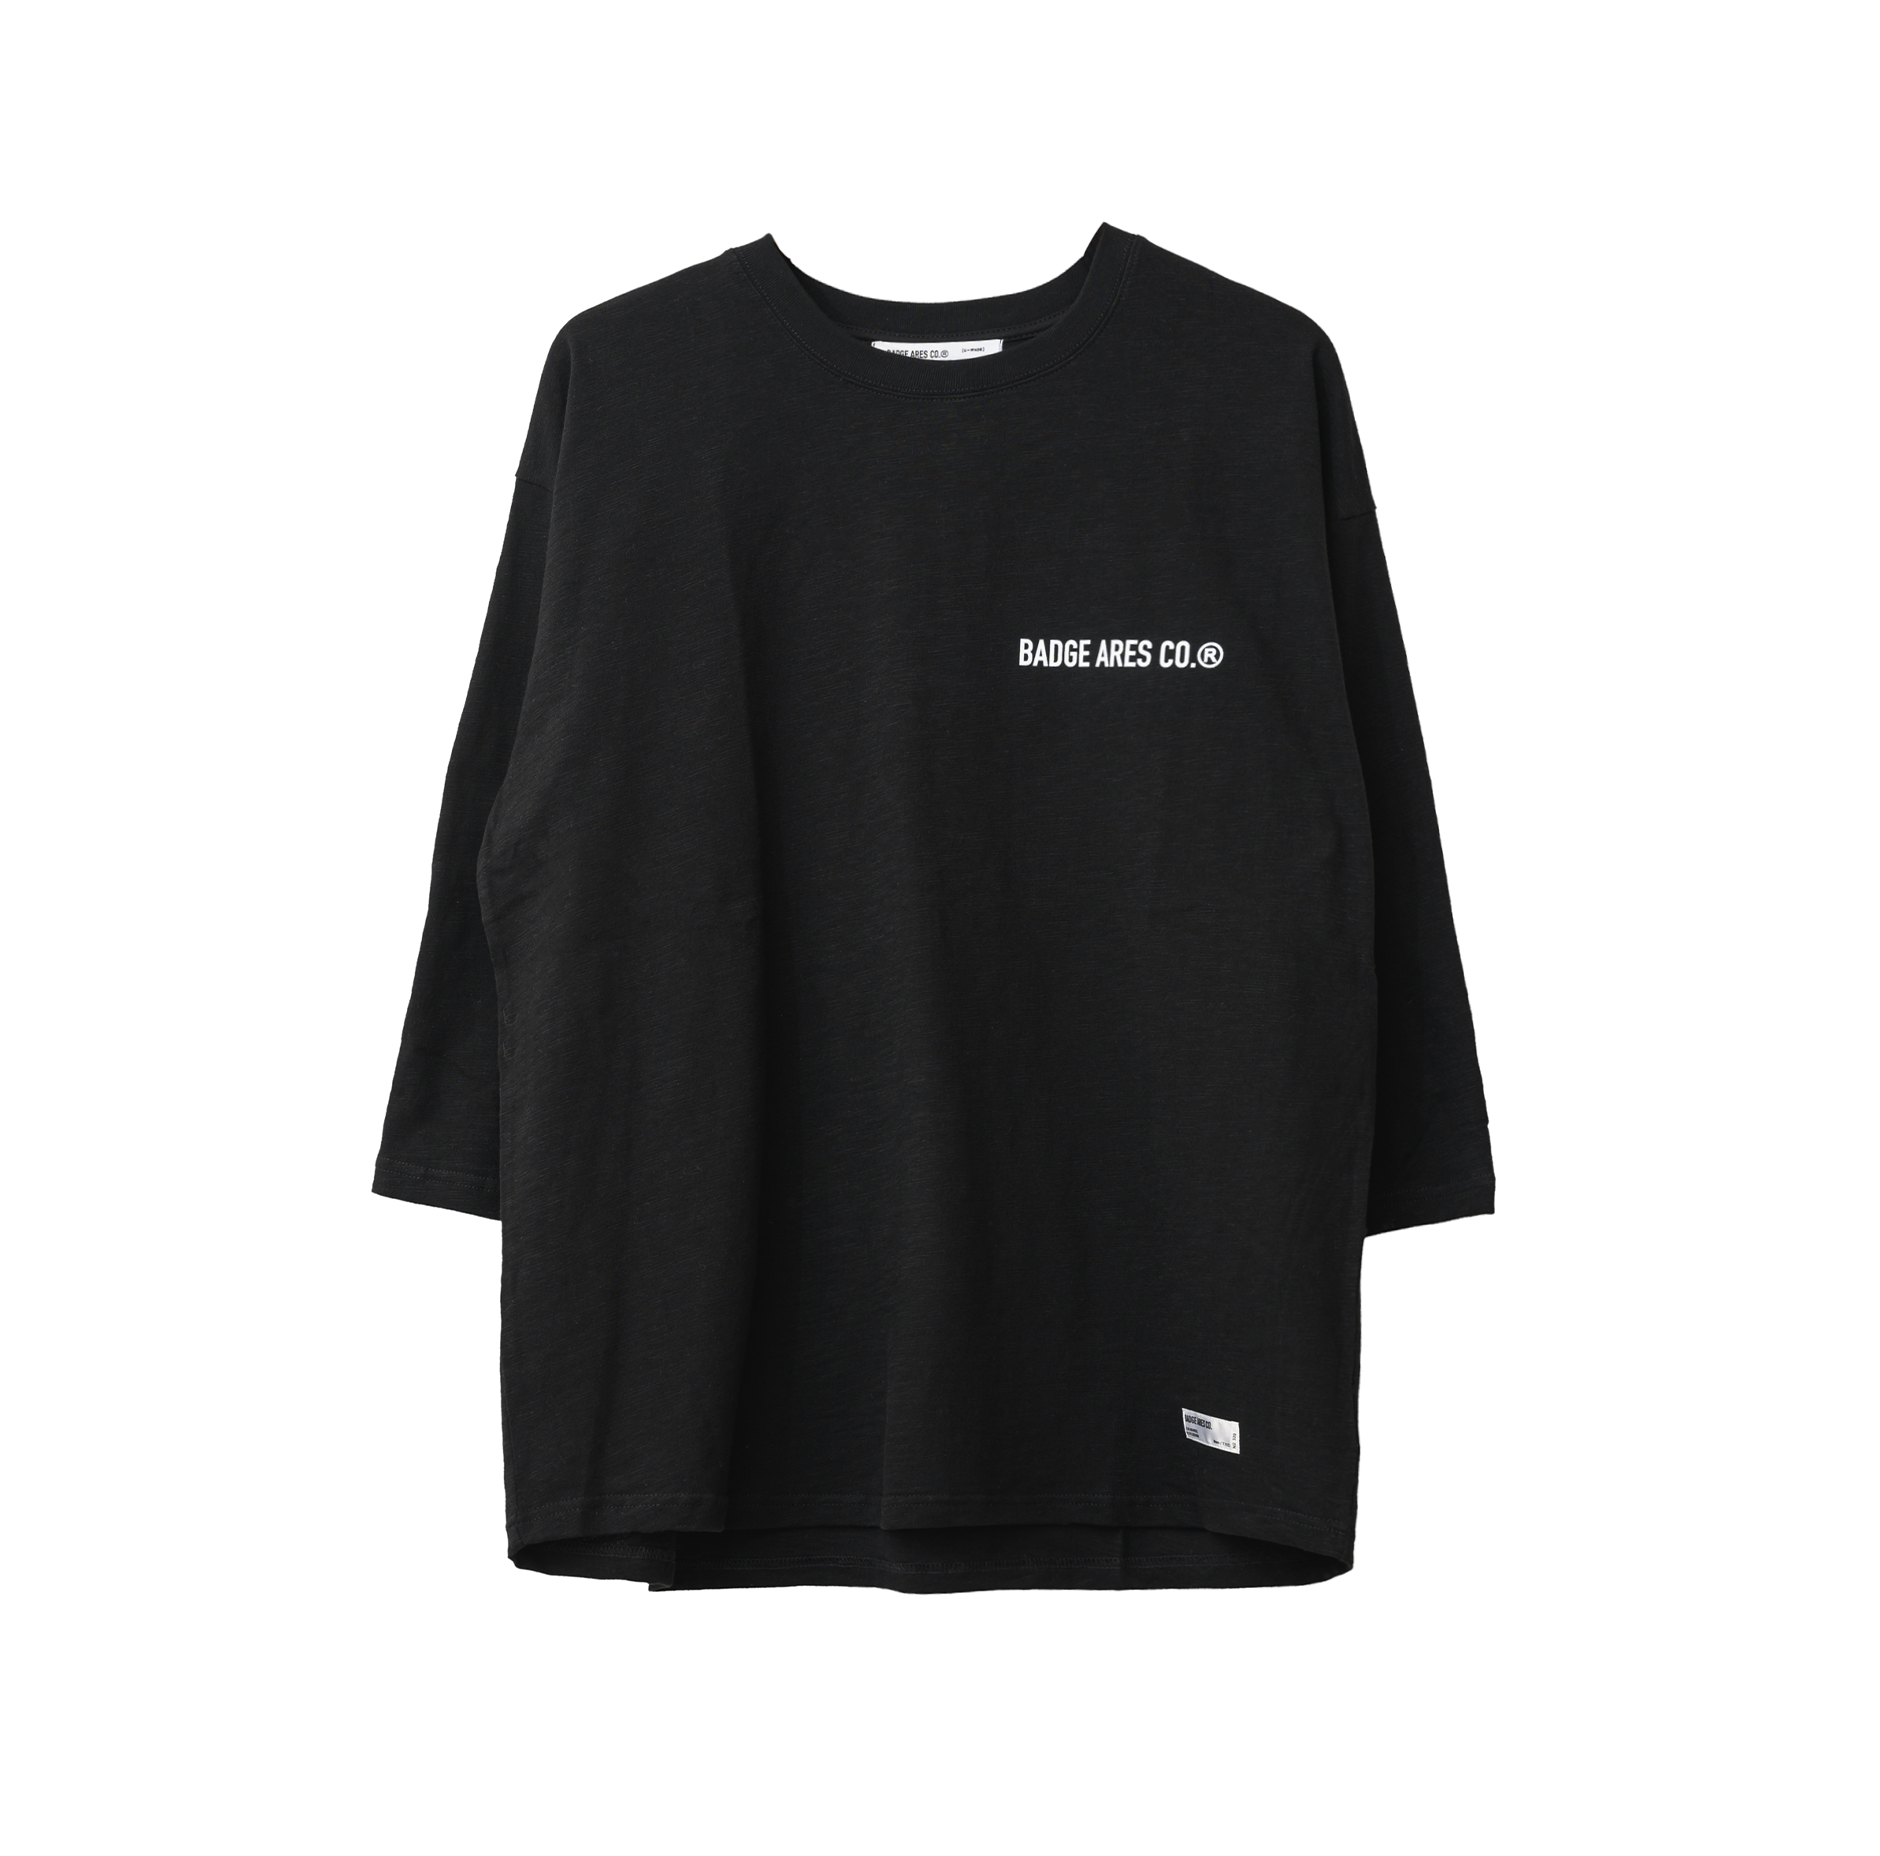 DIFFUSION_34 sleeve tee黑01.png